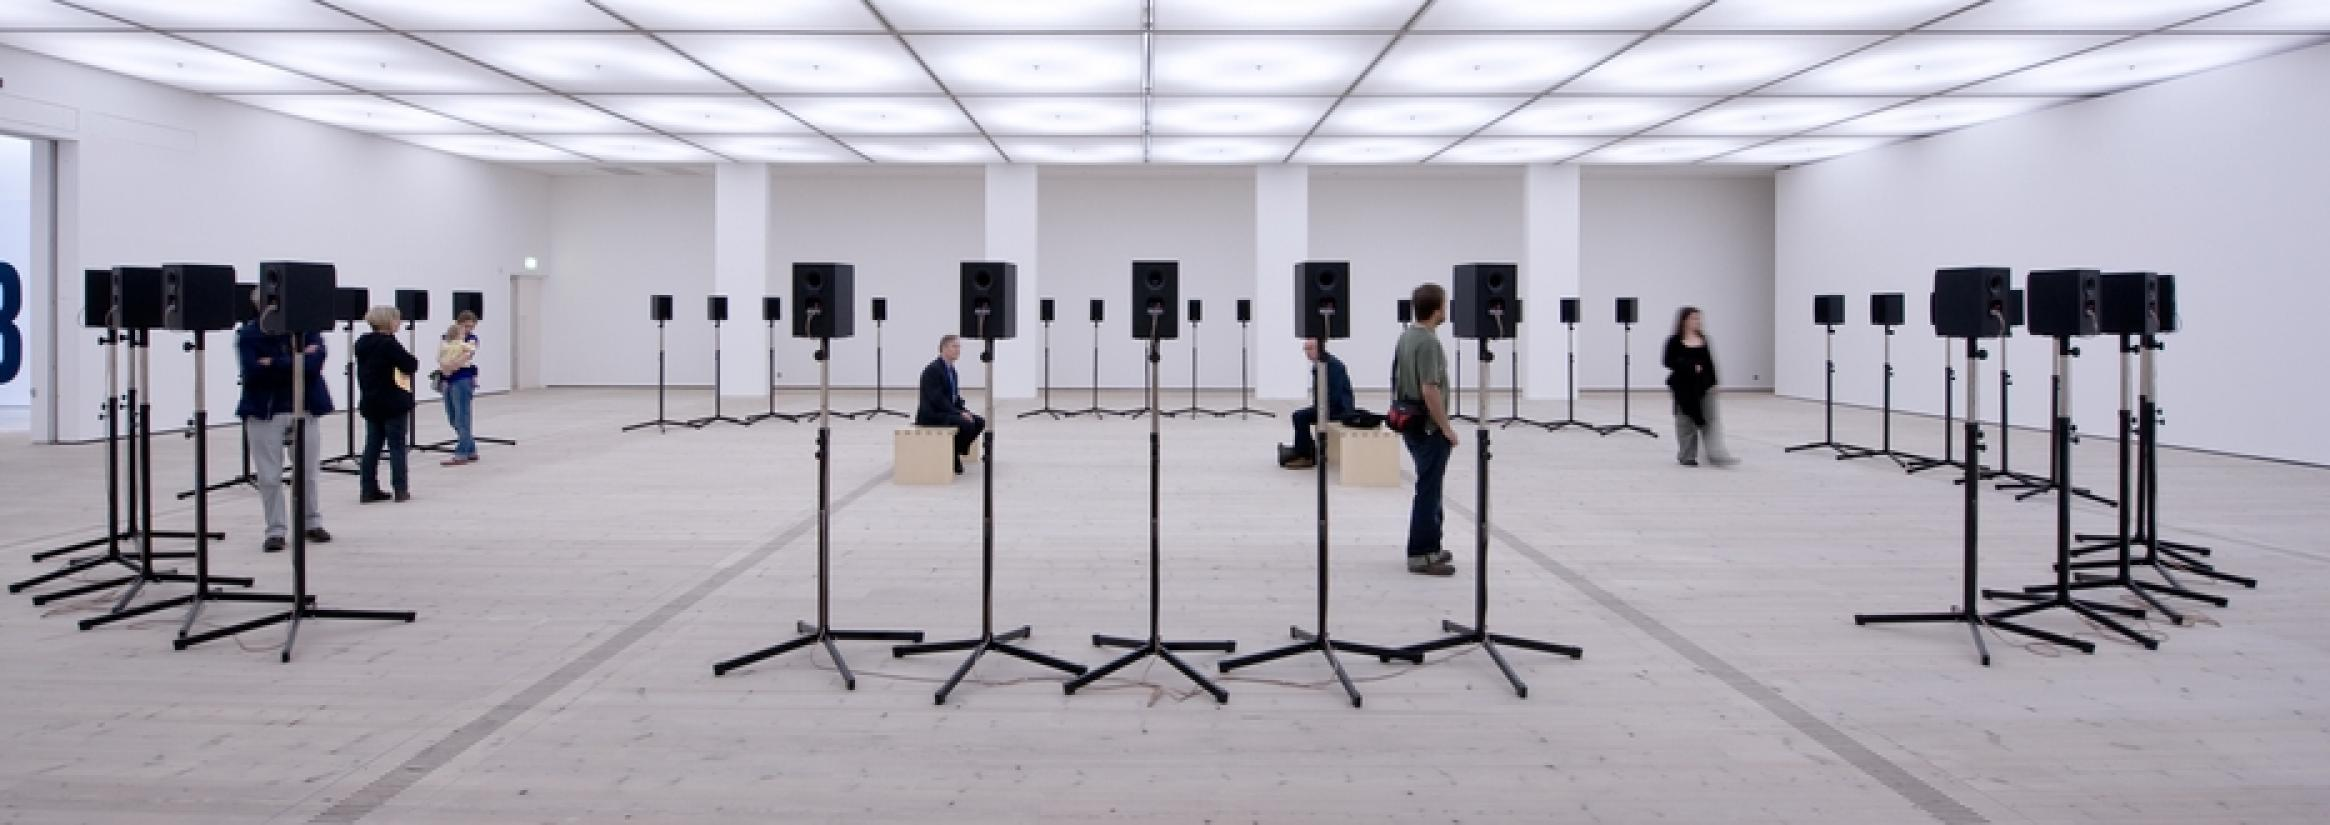 Forty Part Motet at BALTIC. Image BALTIC Centre for Contemporary Art